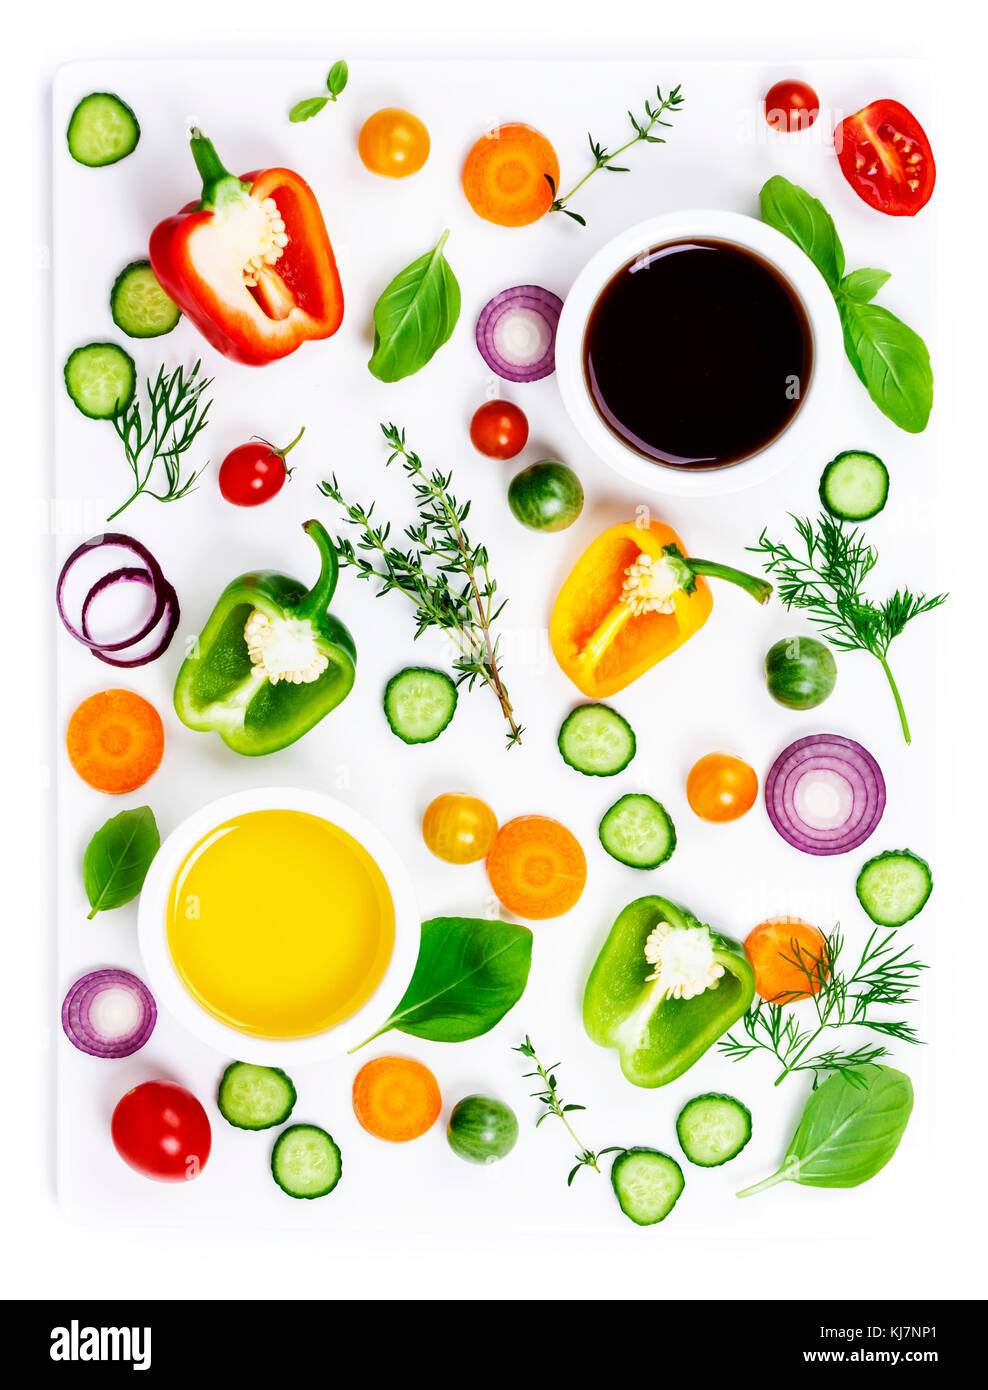 Composition of Fresh organic vegetables (pepper, onion, cucumber, carrot, tomatoe), herbs, olive oil and vinegar - Stock Image